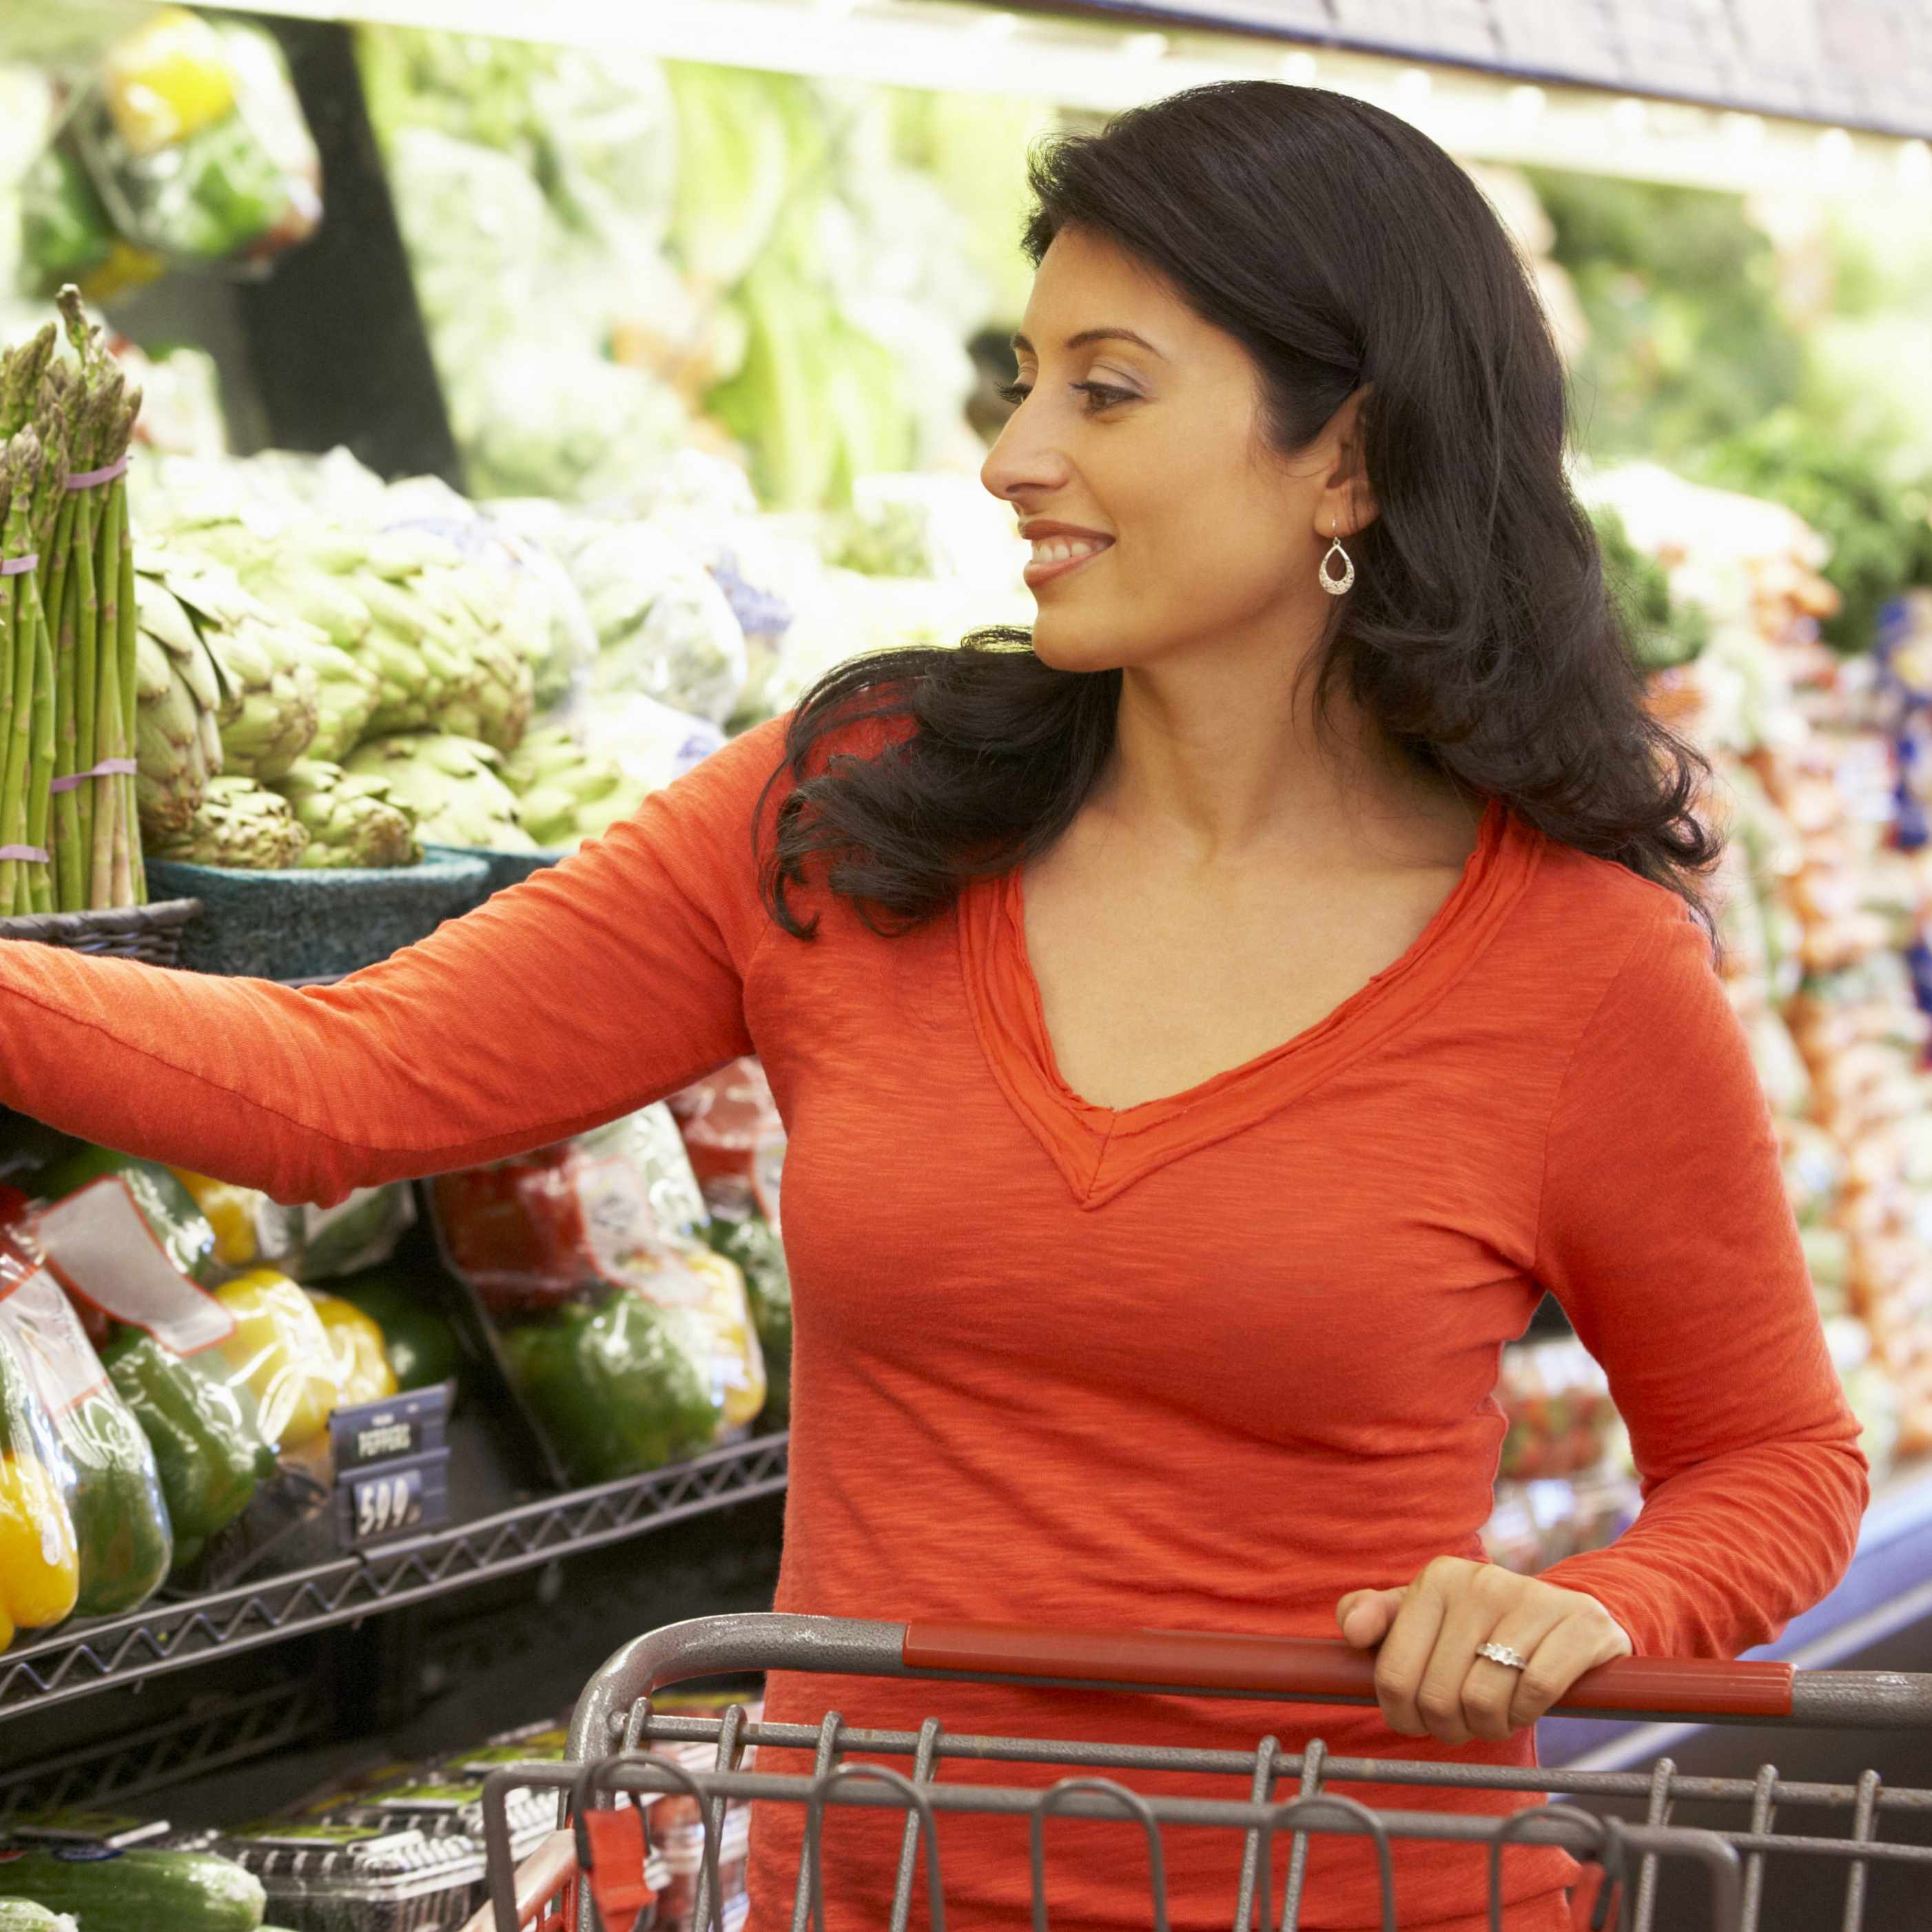 woman shopping in grocery store for healthy food, vegetables